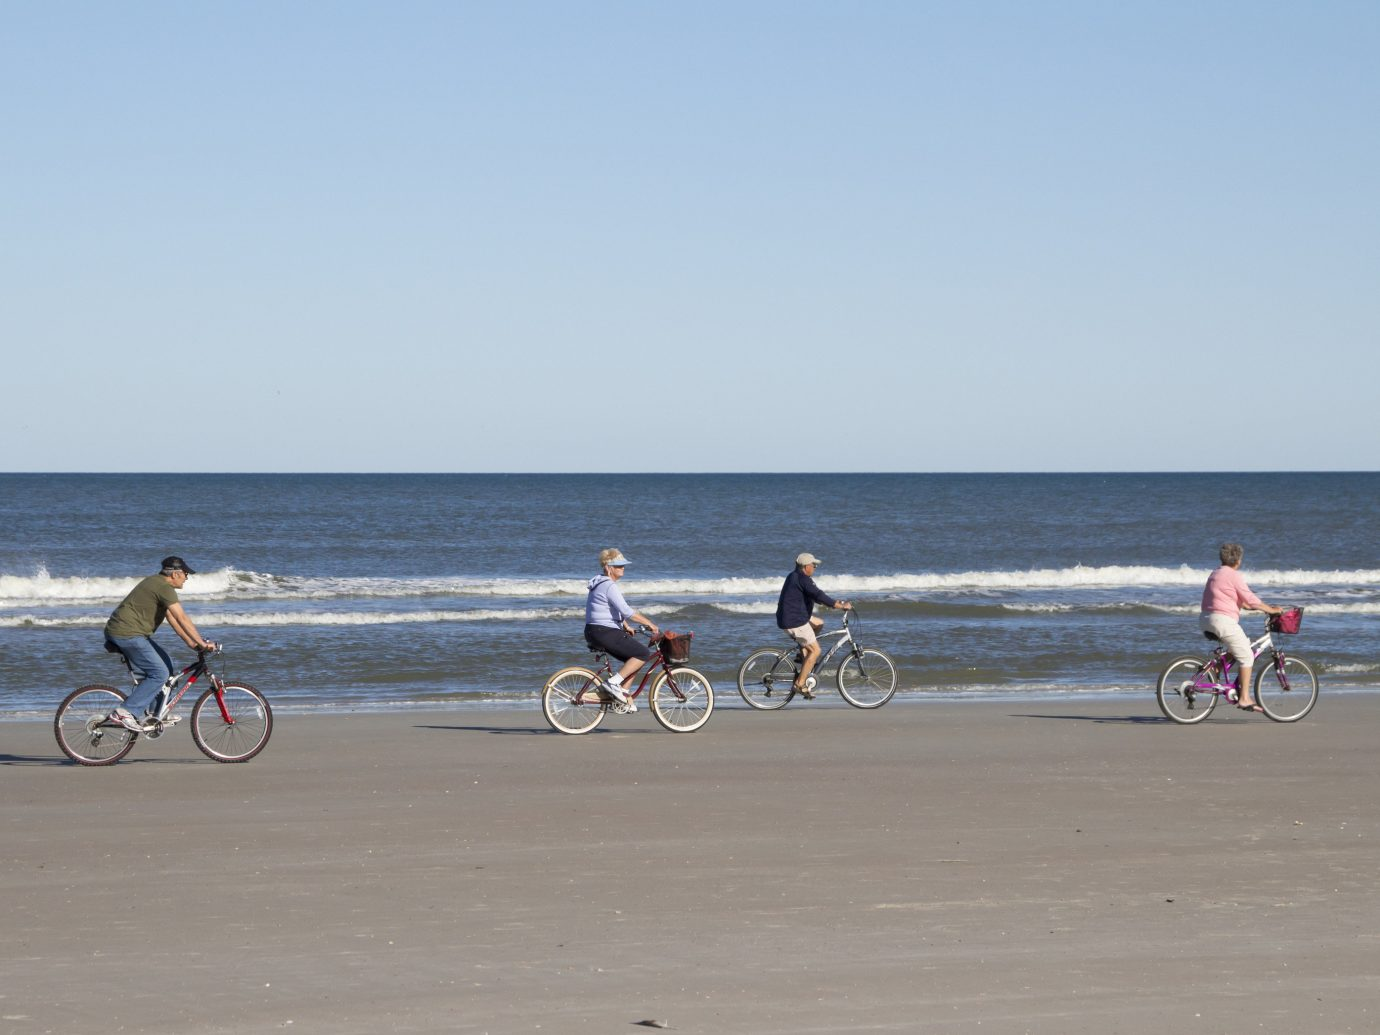 Road Trips Trip Ideas sky outdoor road land vehicle bicycle body of water Beach cycling Sea riding sand shore people vehicle coastal and oceanic landforms road bicycle recreation vacation Coast sports equipment endurance sports boardwalk tourism hybrid bicycle group cycle sport Ocean mountain bike sandy